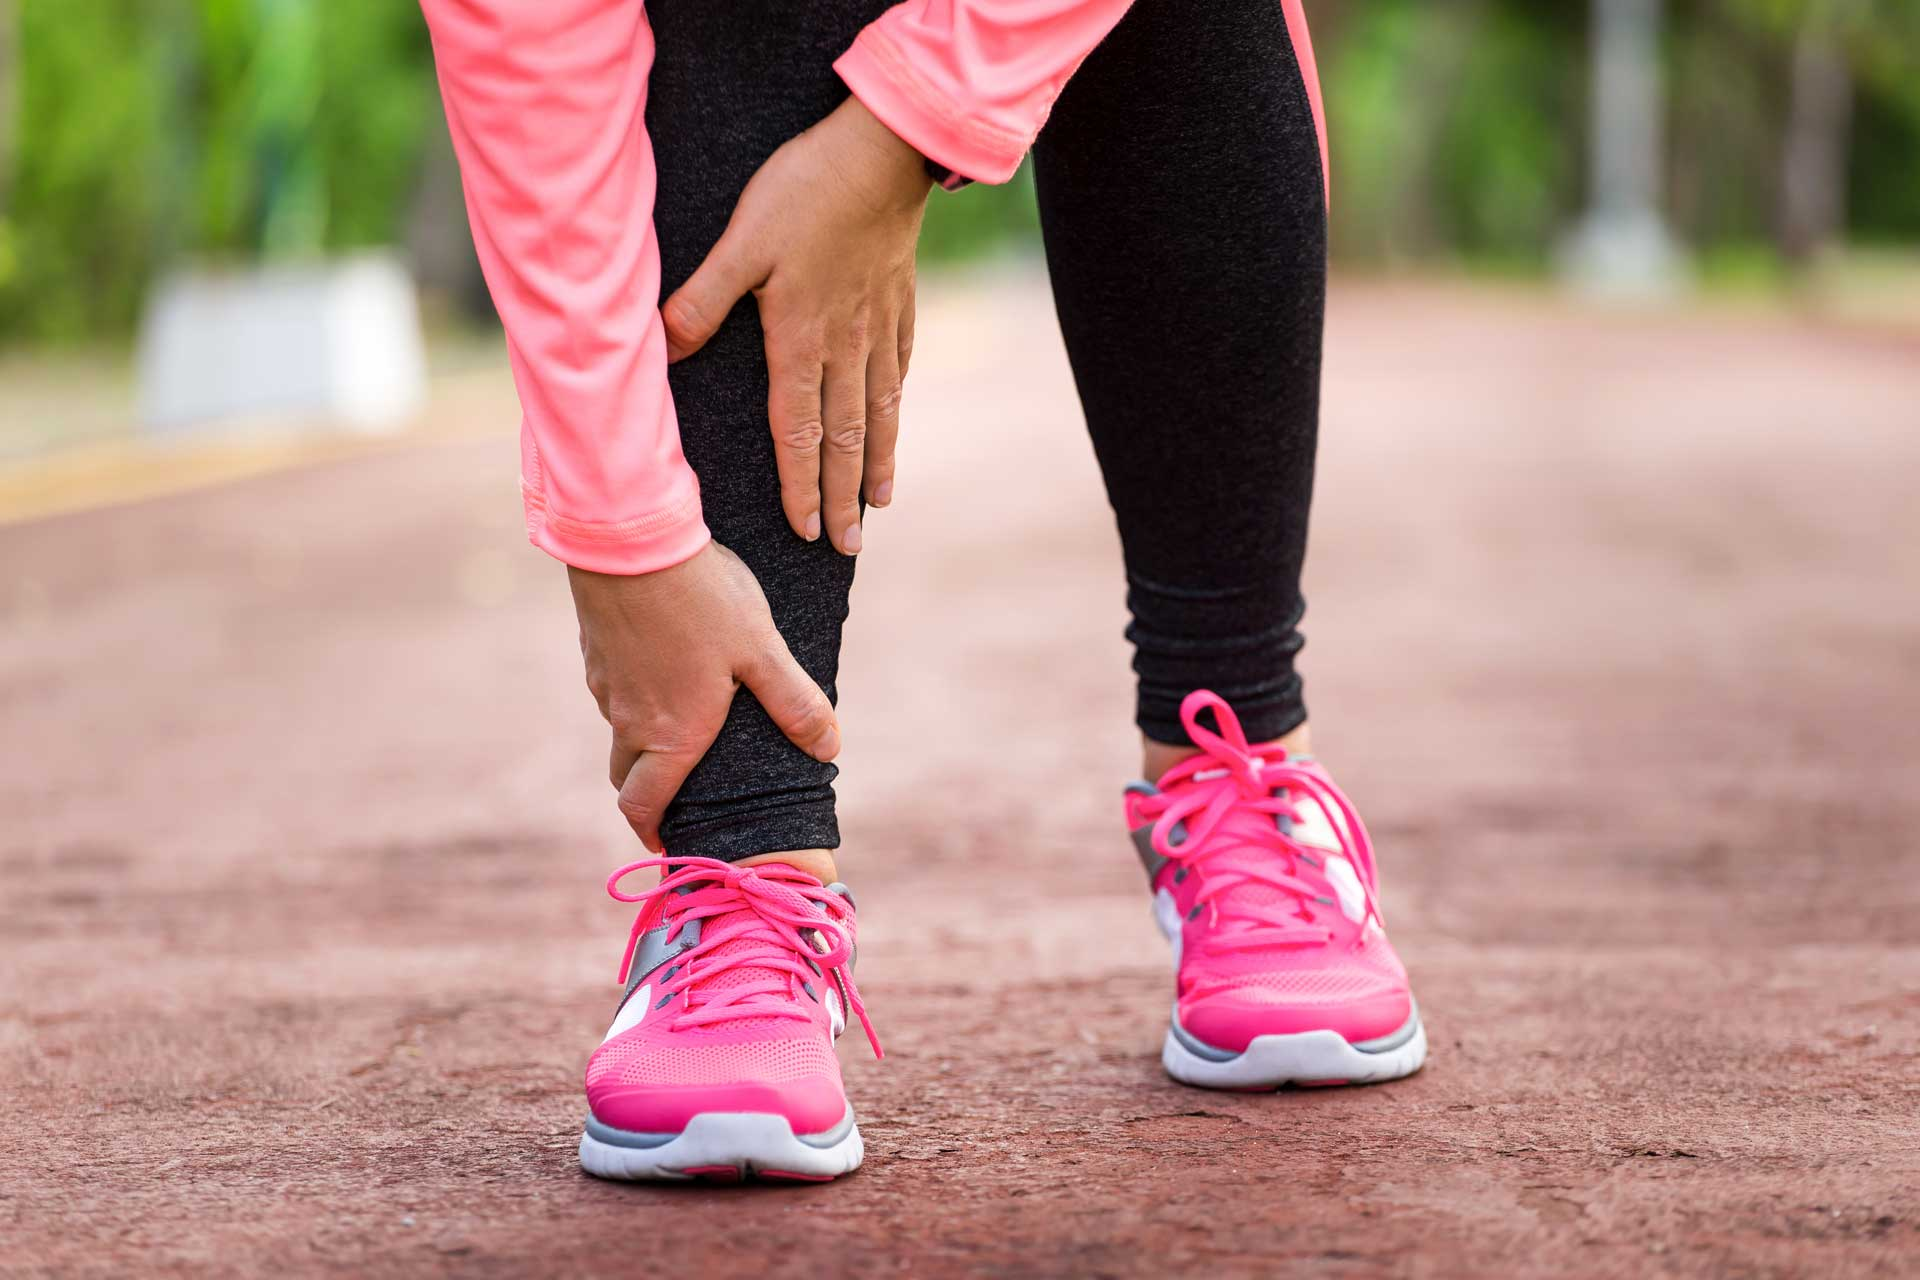 Image of runner feeling pain from arthritis in the ankle - Loudoun Foot Care - Shuman Podiatry